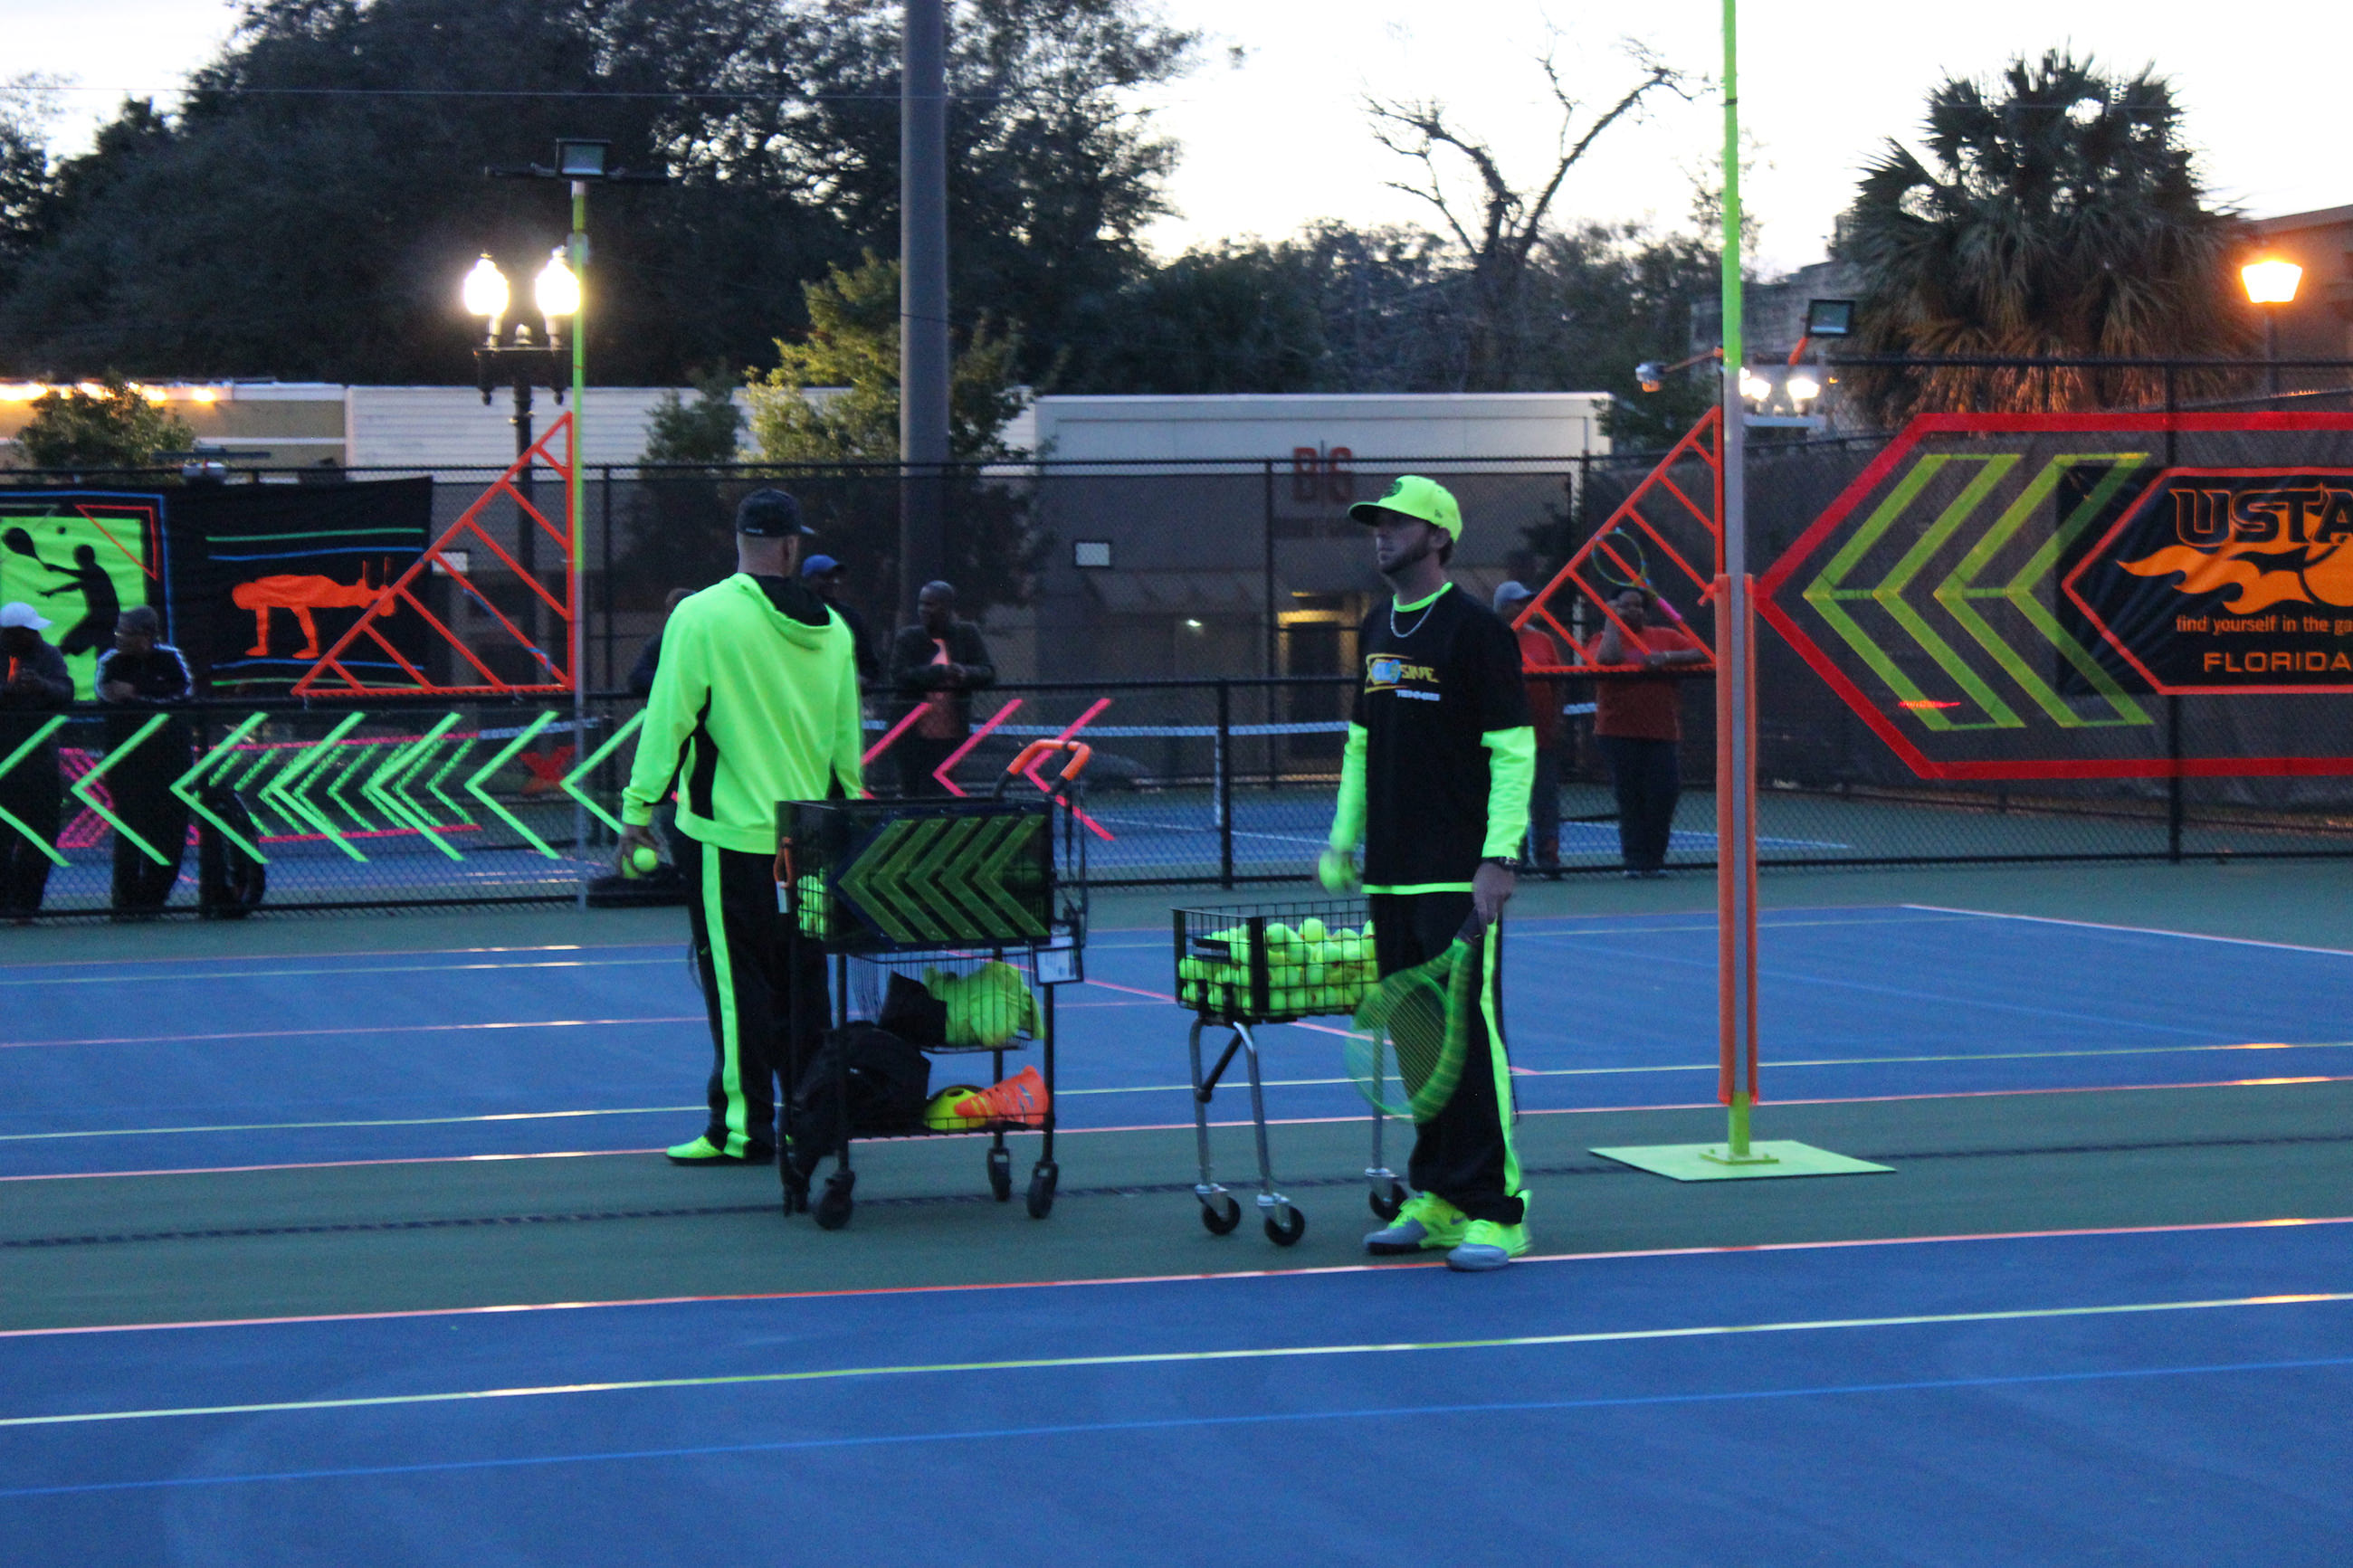 Contact XGLOsive Tennis Team